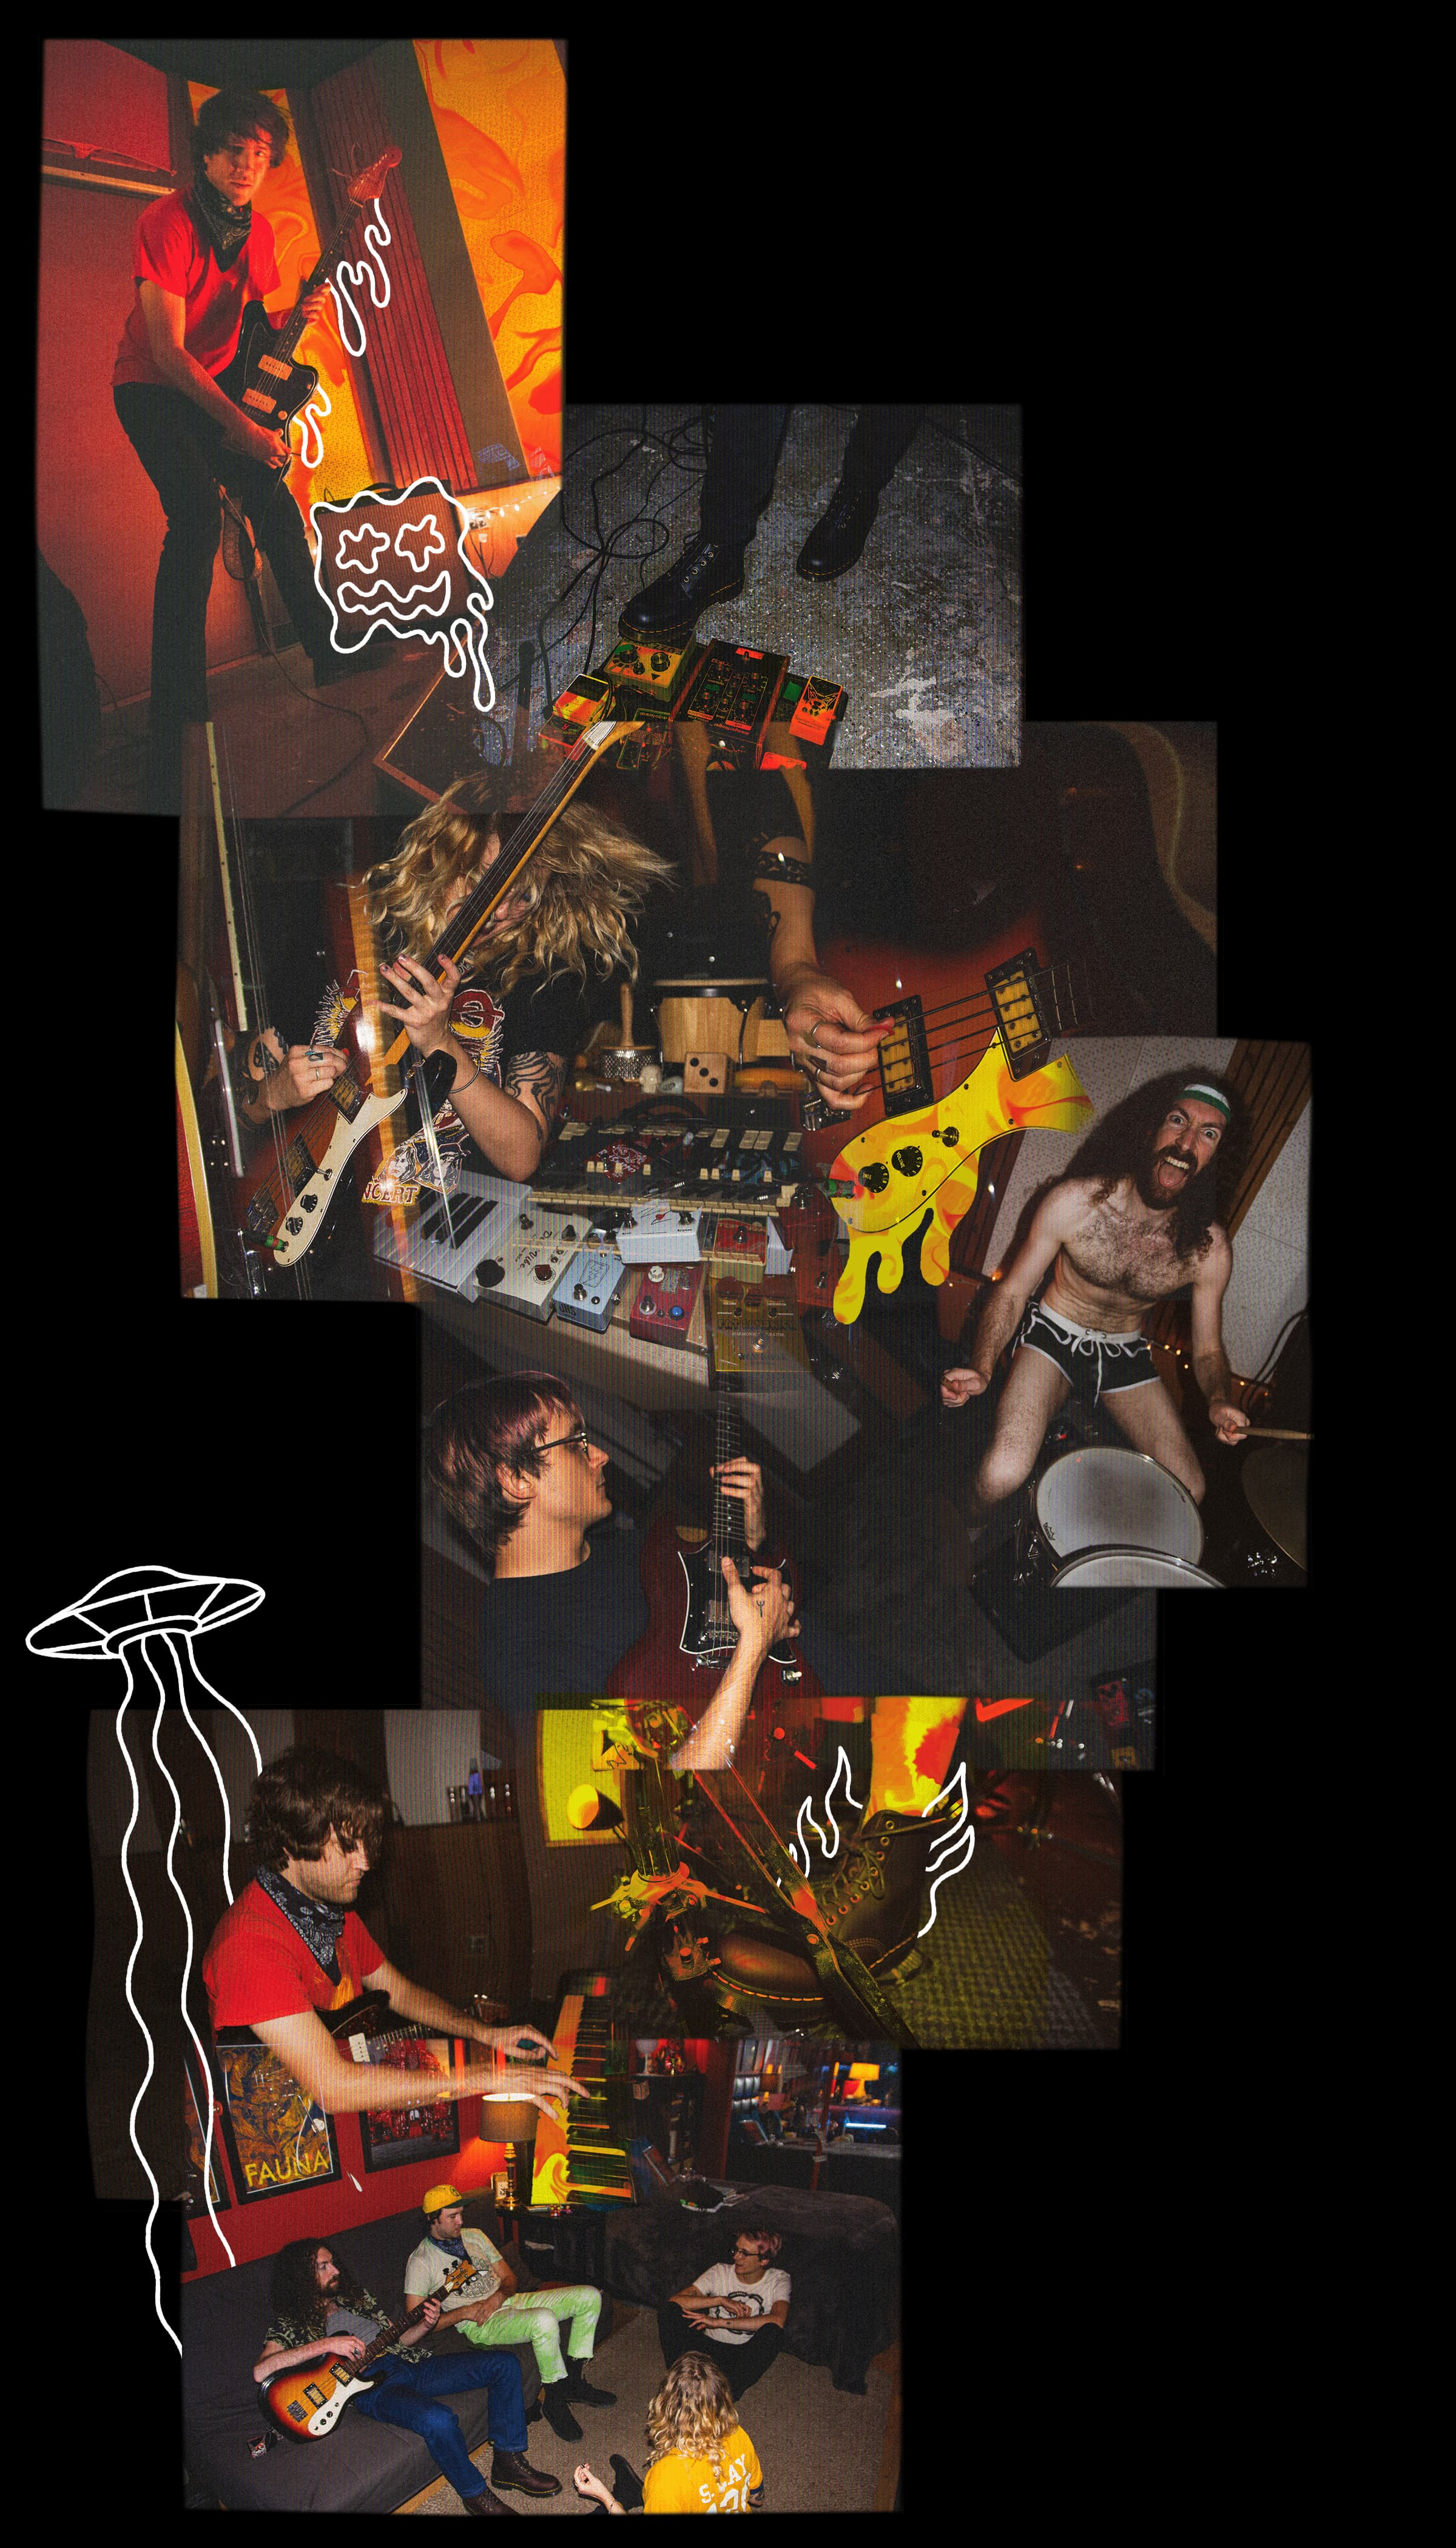 A collage of photos featuring the individual band members with handrawn illustrations as highlights